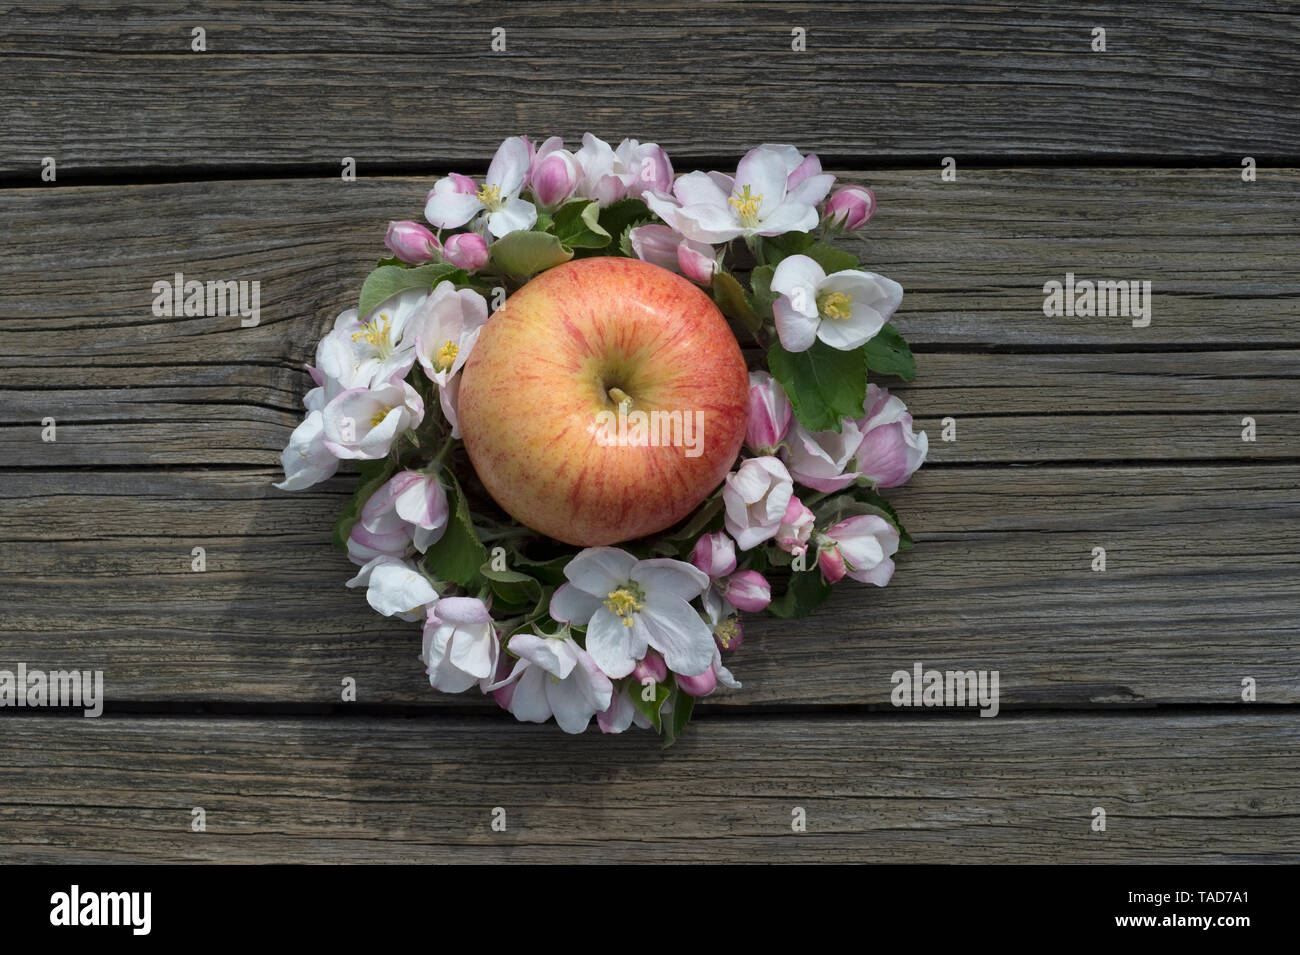 Apple 'Gala Royal' surrounded by apple blossoms on wood - Stock Image